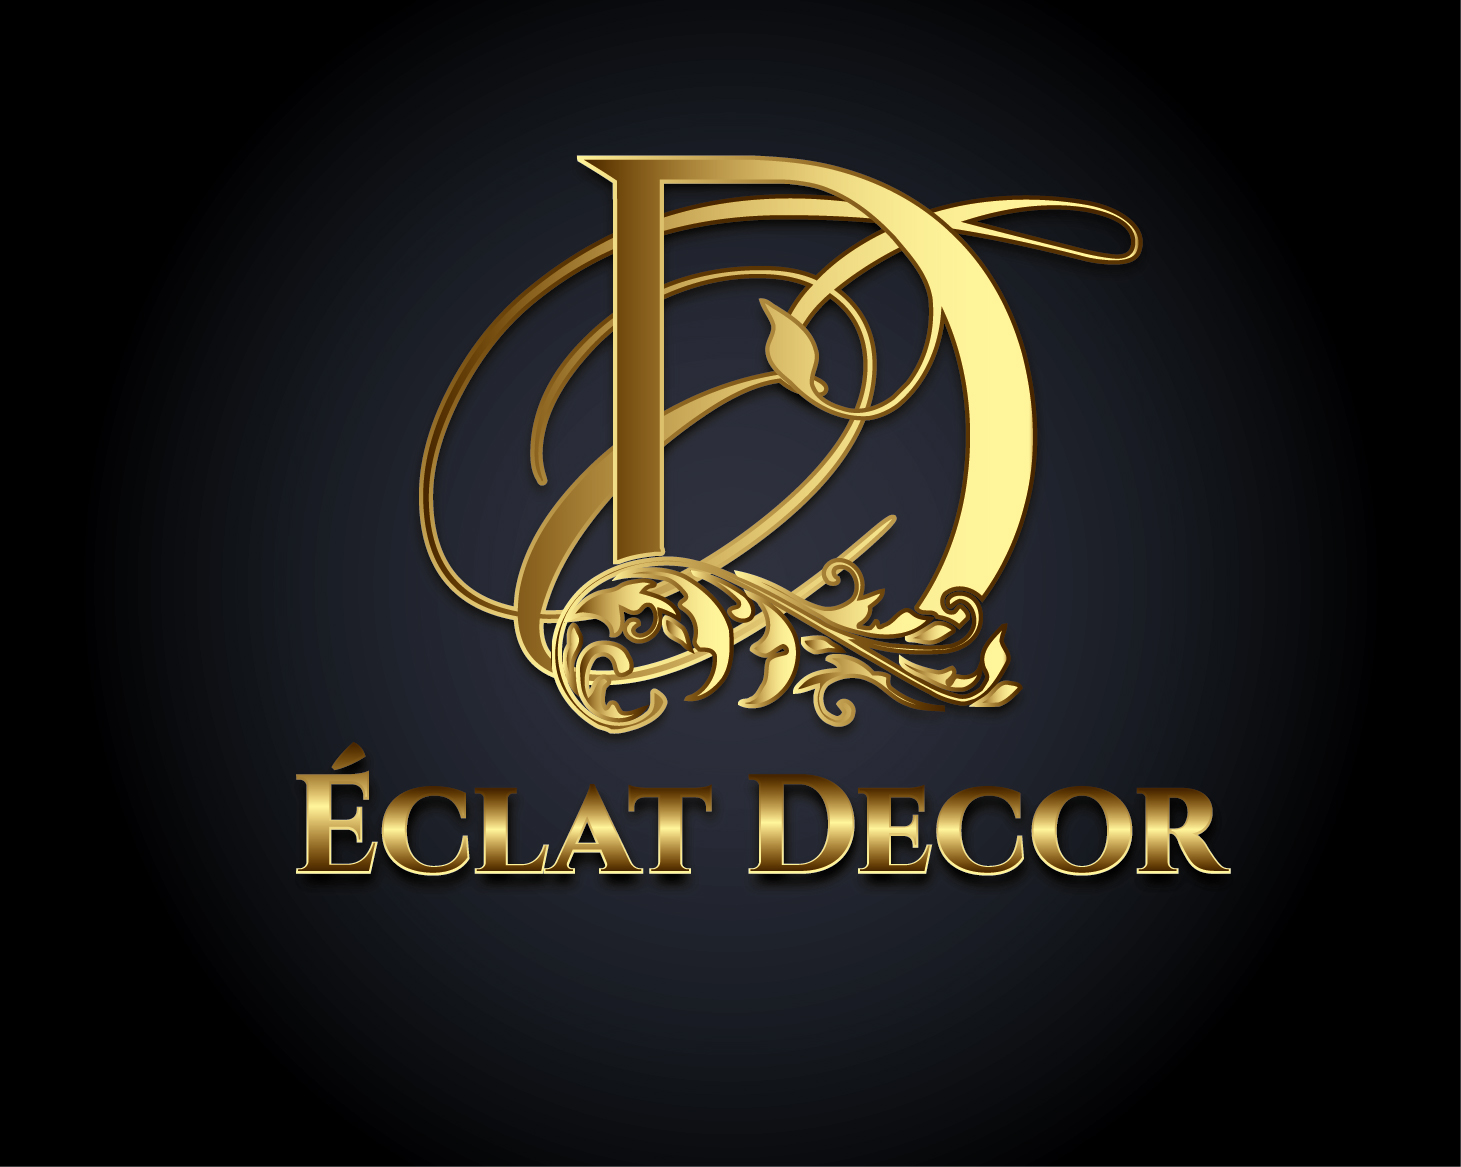 Logo Design by VENTSISLAV KOVACHEV - Entry No. 17 in the Logo Design Contest Imaginative Logo Design for Éclat Decor.